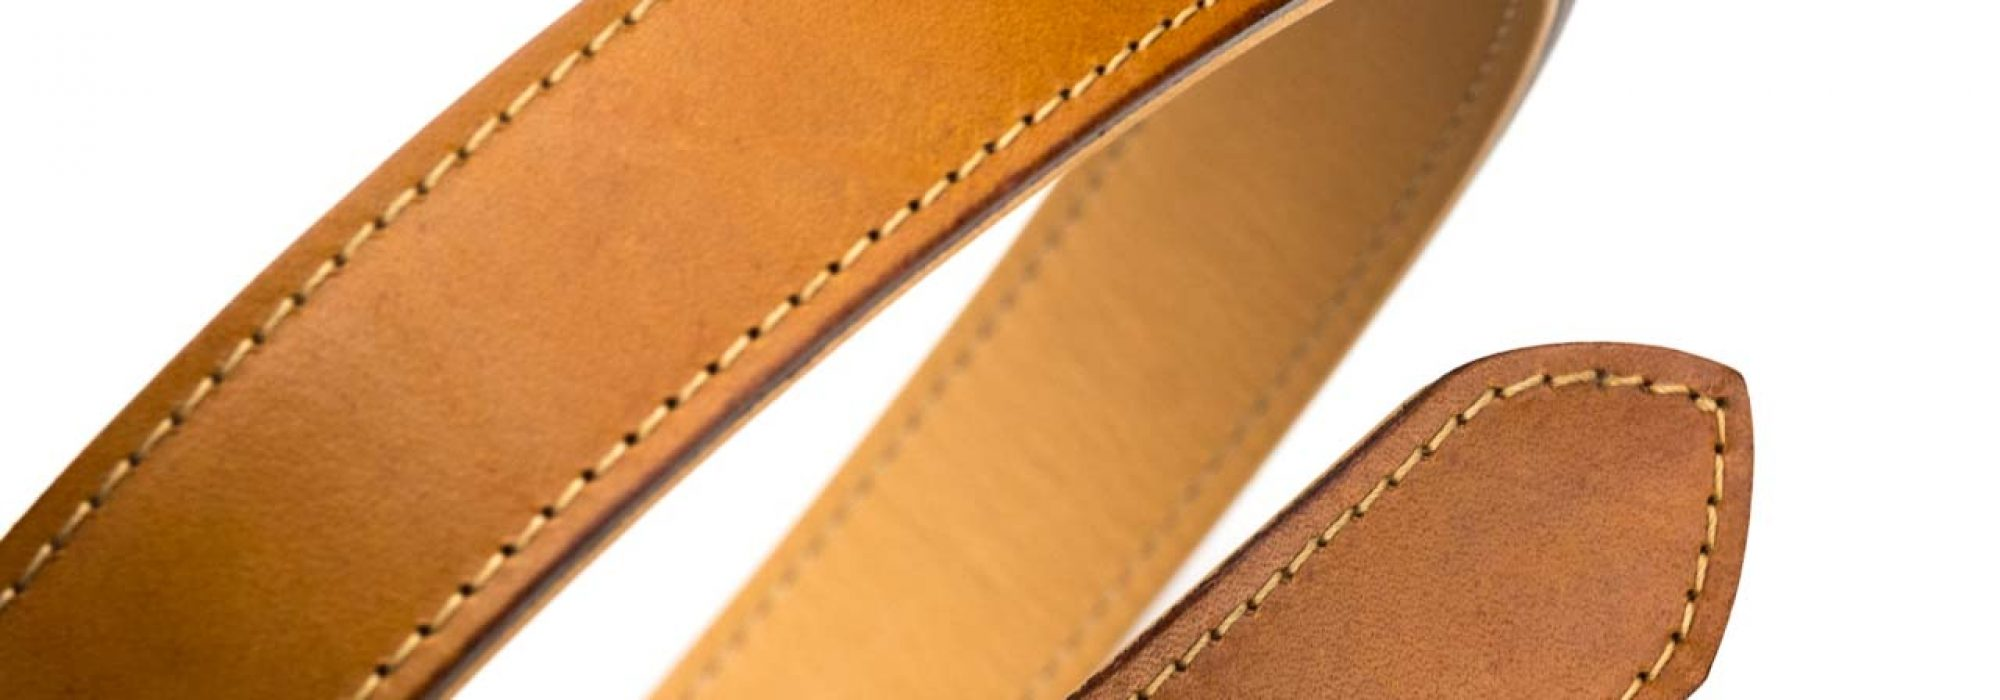 Ferrum and Hide Ltd. j and fj baker full grain london tan belt strap